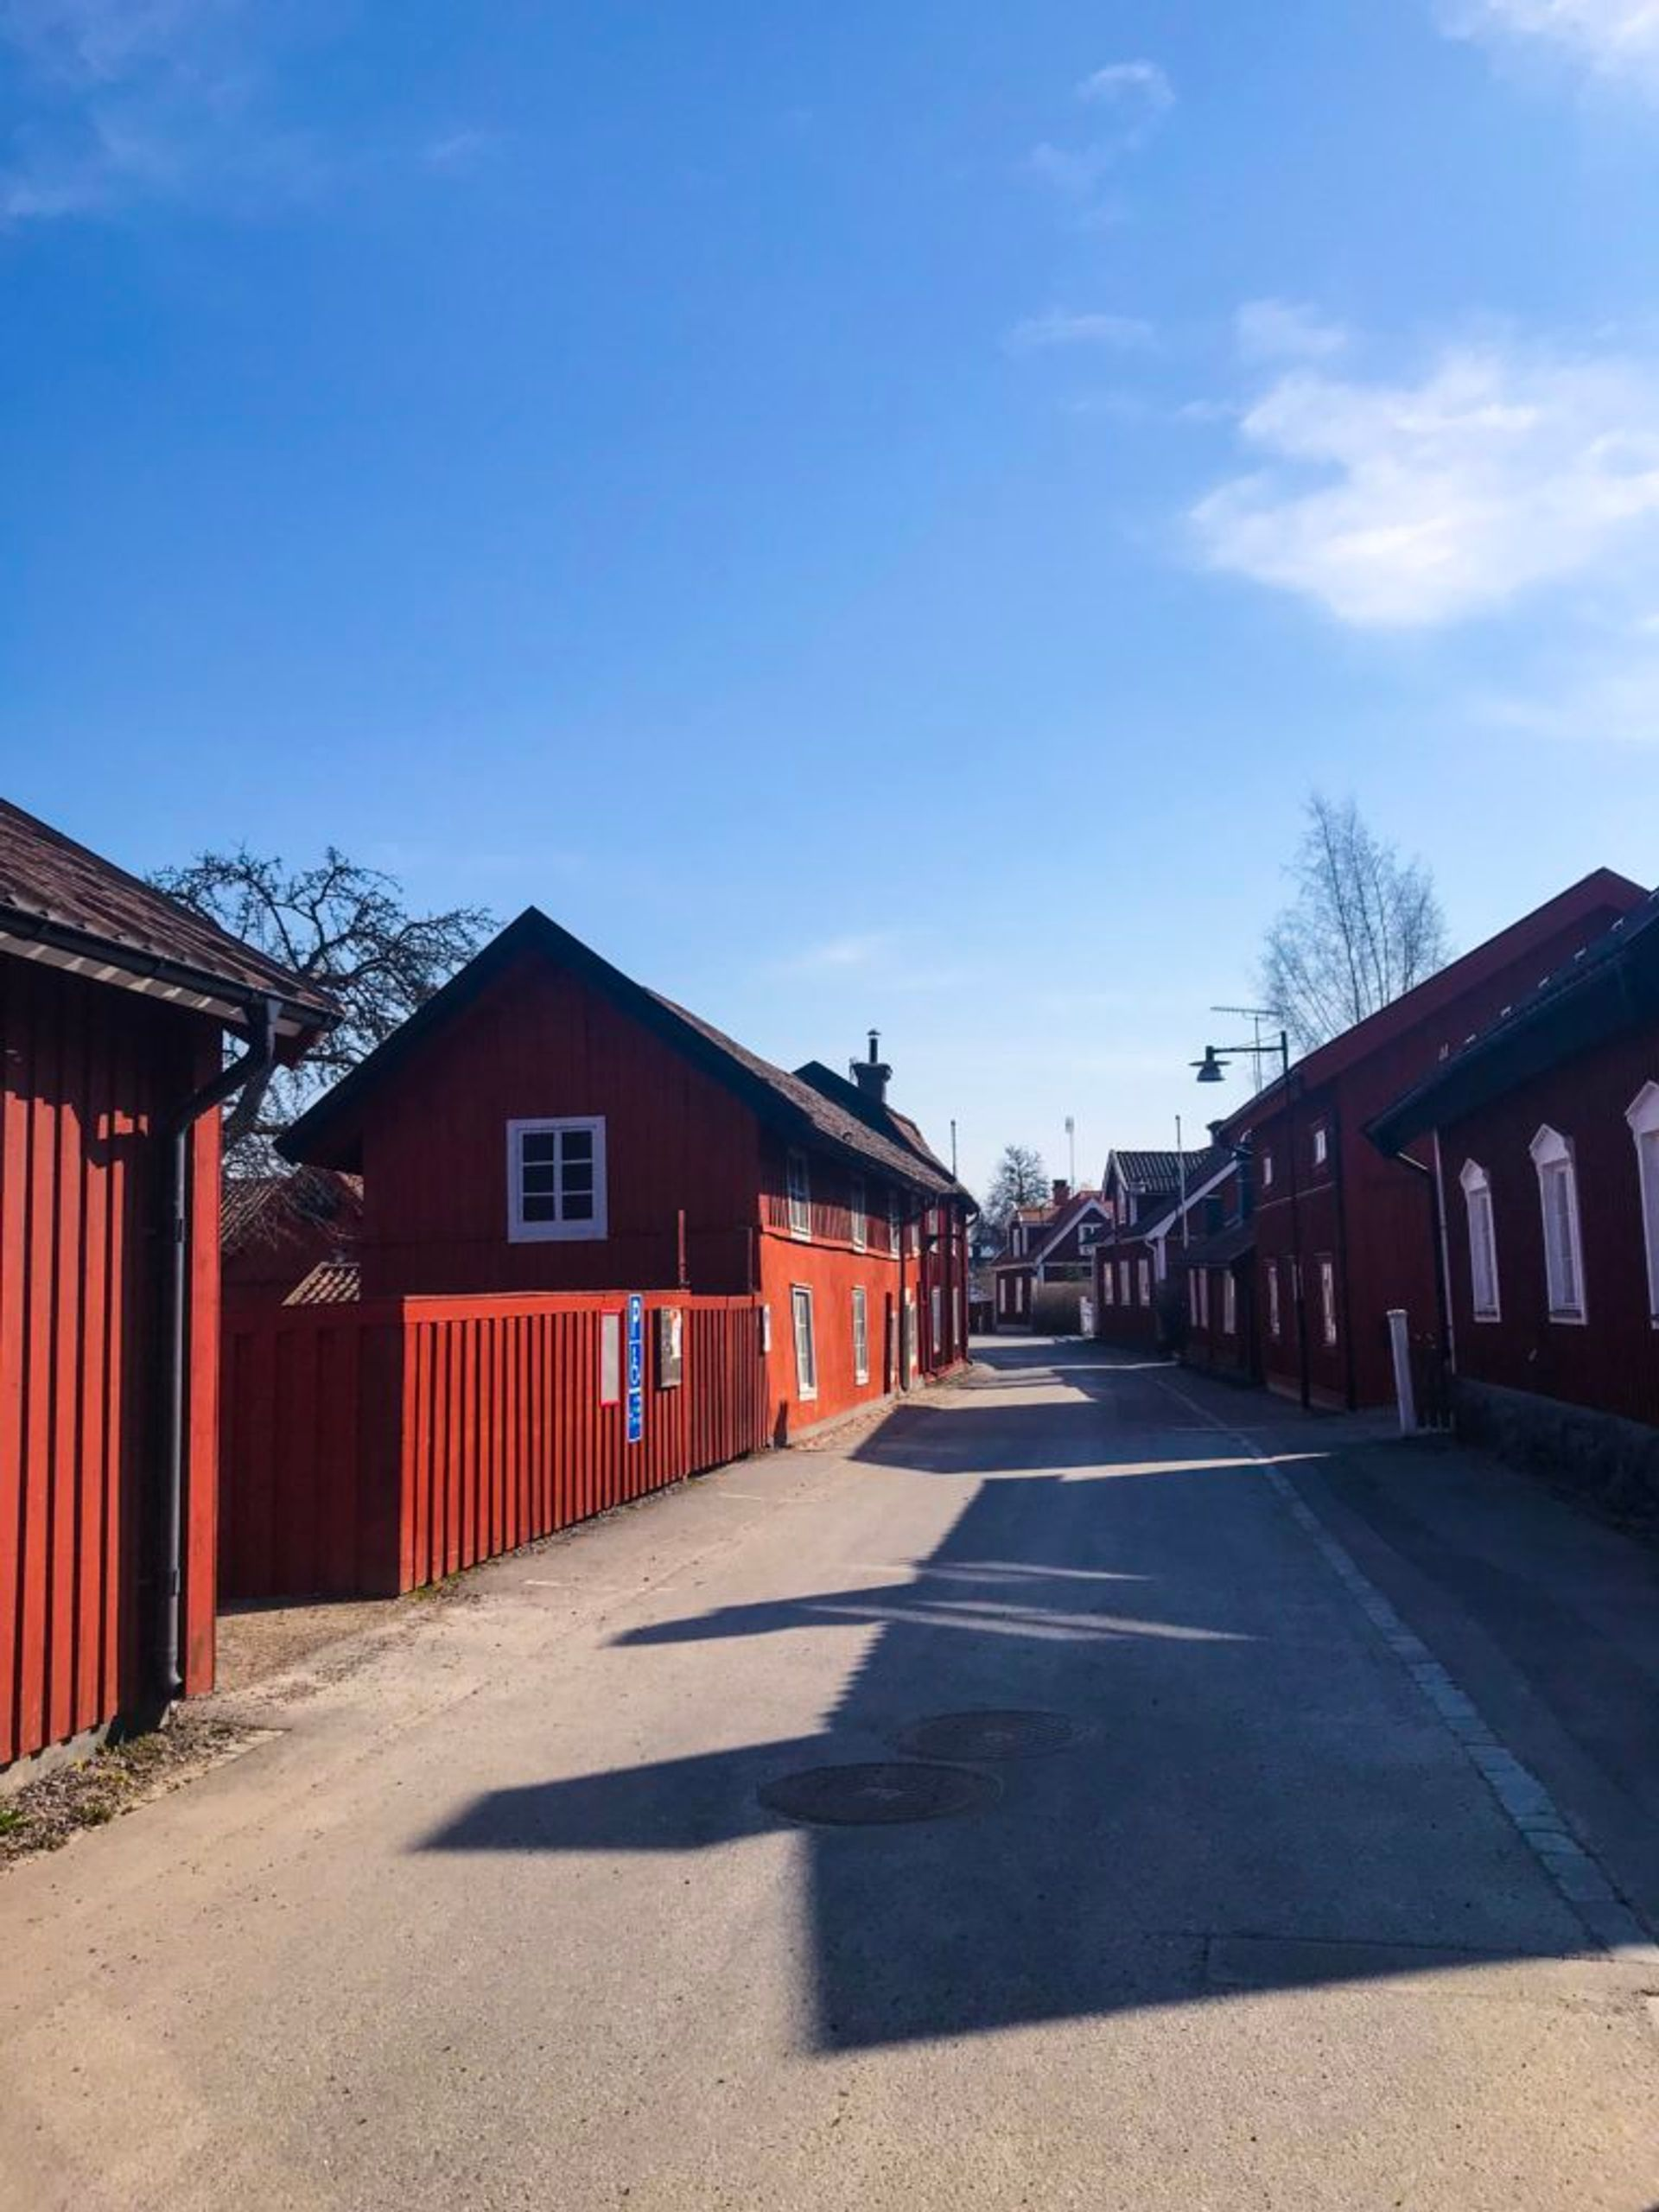 Wooden buildings painted in a dark red colour.